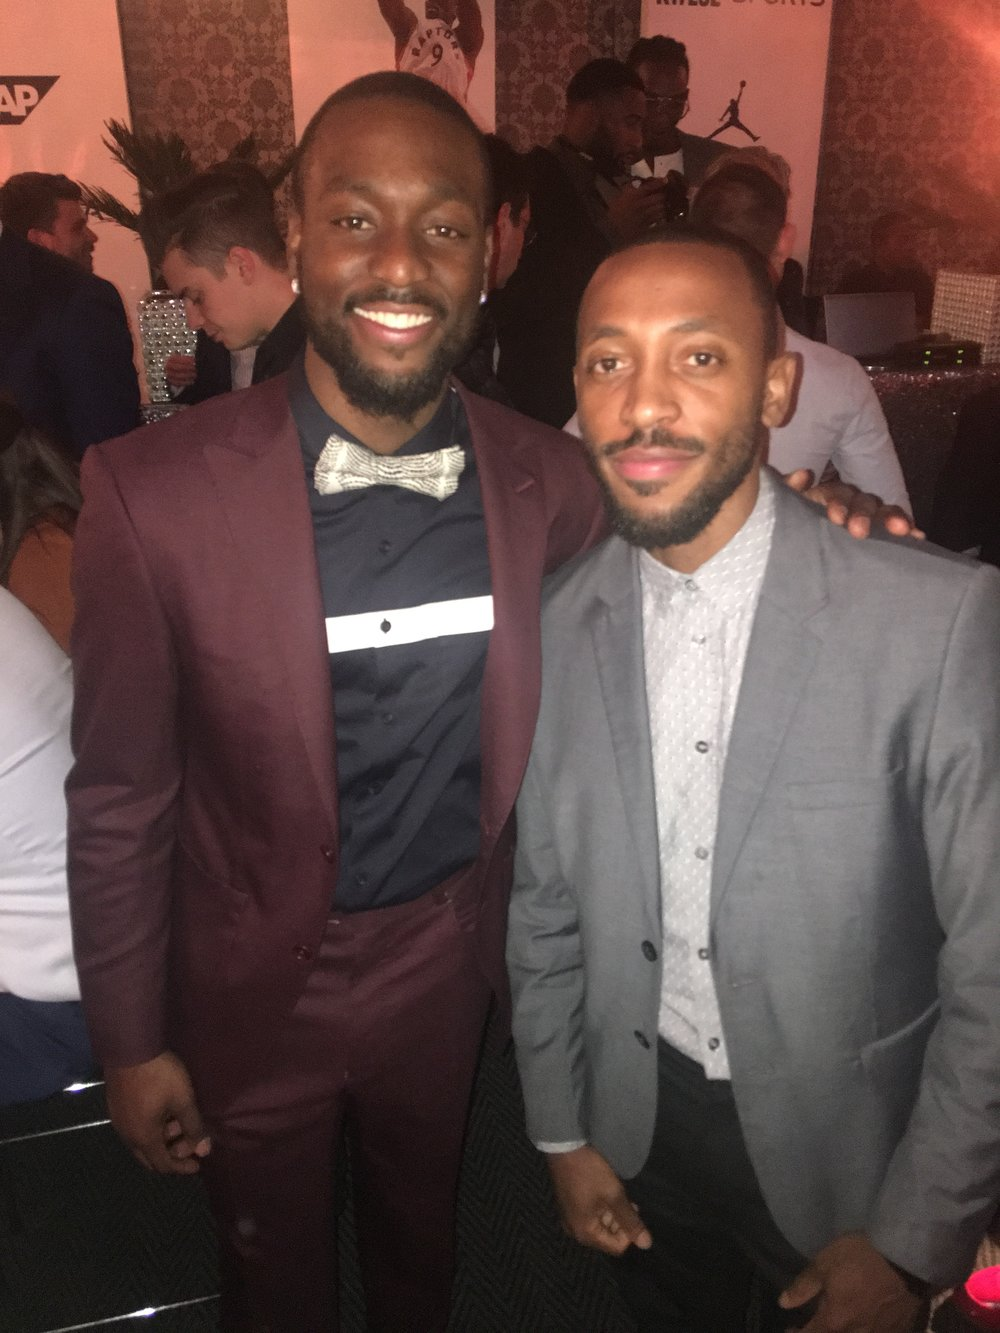 Kemba Walker (Charlotte Hornets) - Just two kids from the South Bronx in South Africa